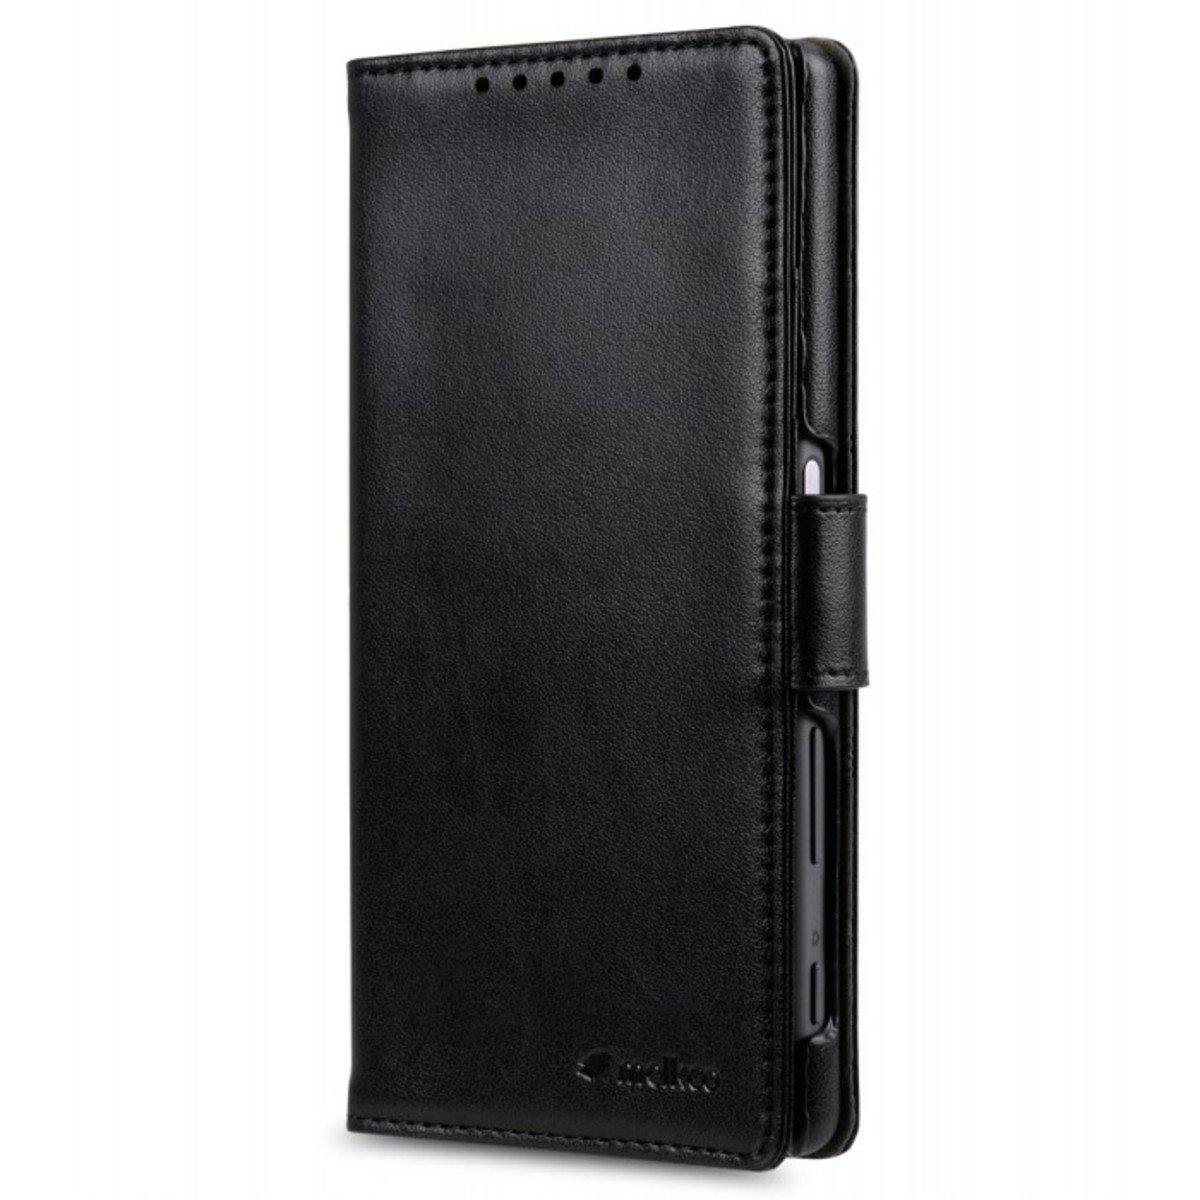 Sony Xperia Z5 Wallet Book Type 人造皮手機套 - 黑色